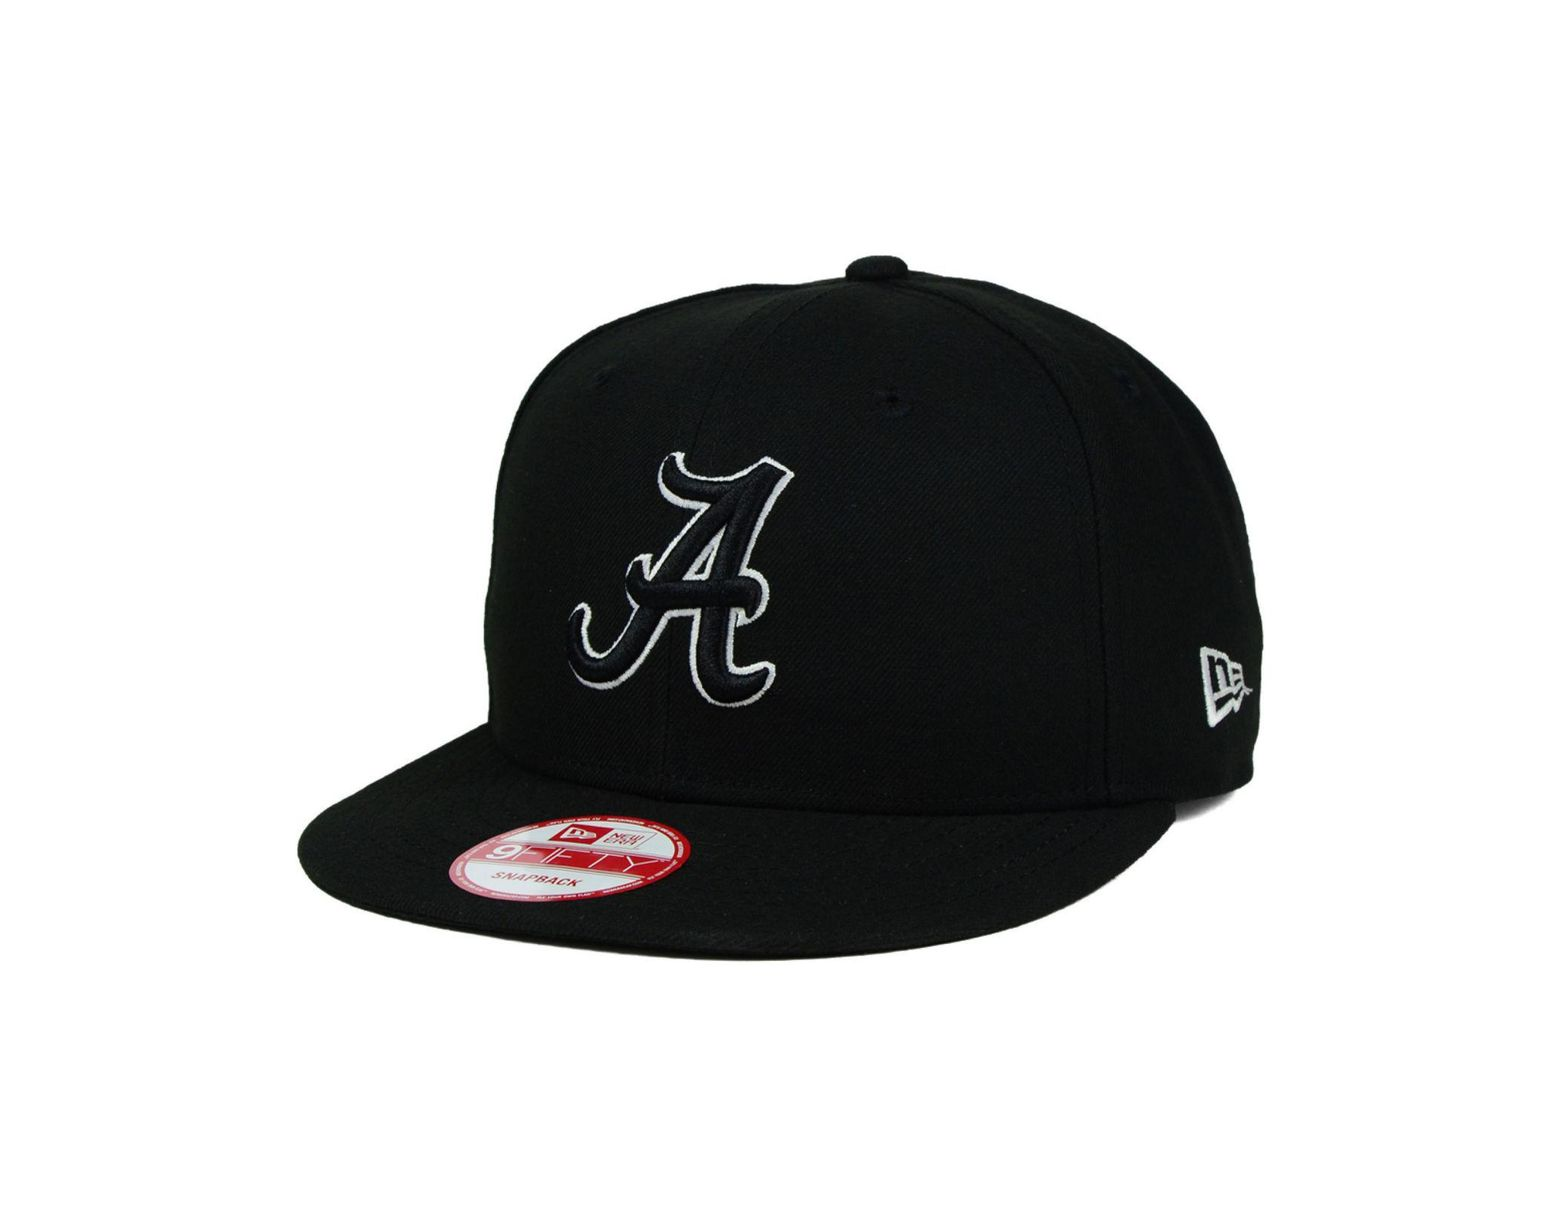 100% authentic 00309 b060d KTZ Alabama Crimson Tide Black White 9fifty Snapback Cap in Black for Men -  Lyst